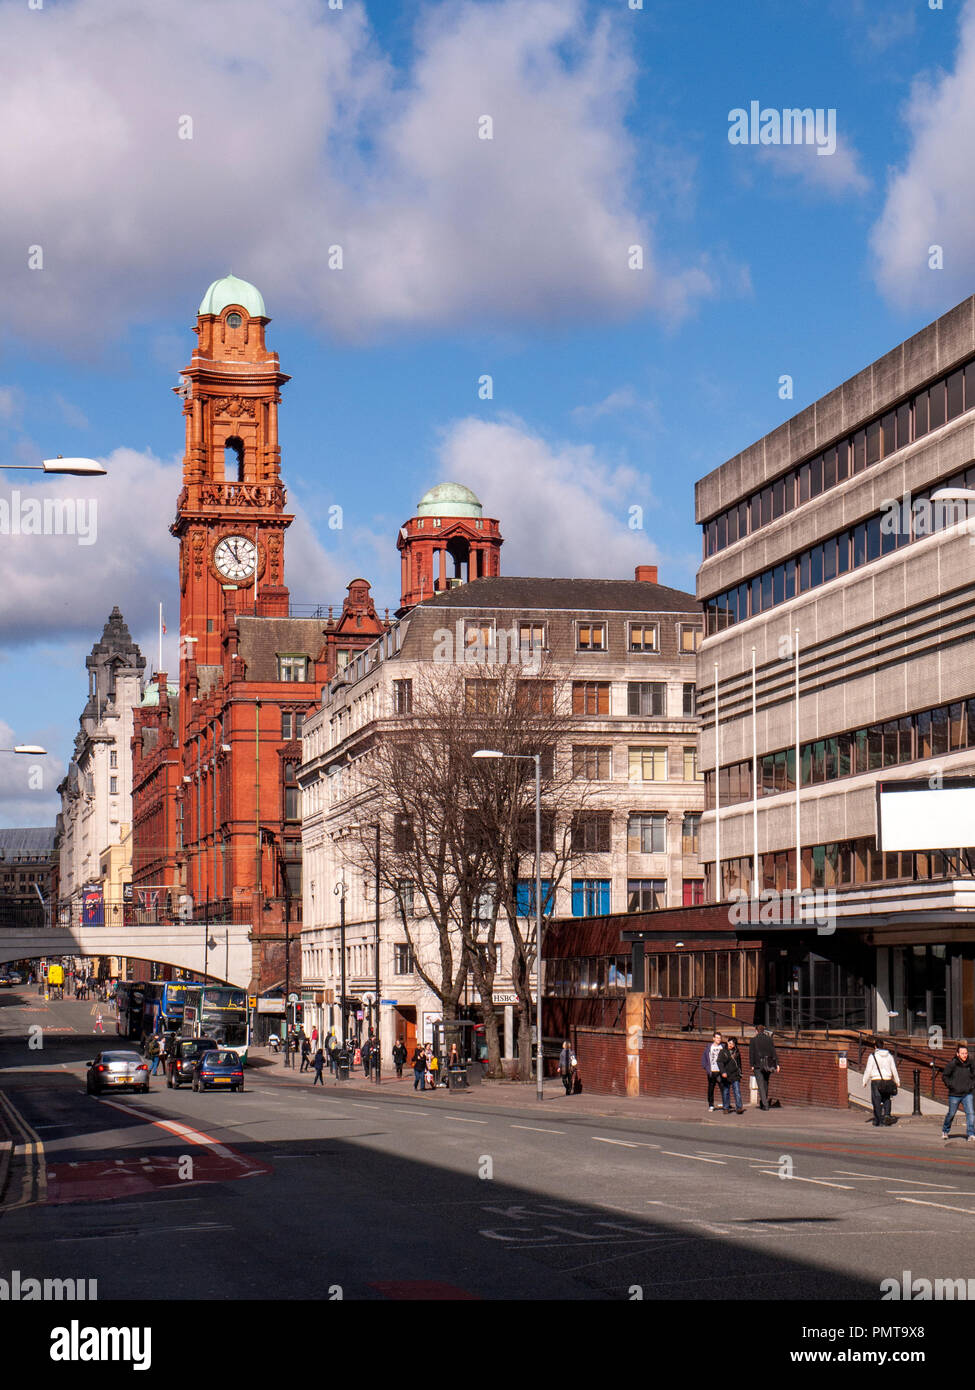 Oxford Road view with the clock tower of Palace hotel in Manchester UK - Stock Image